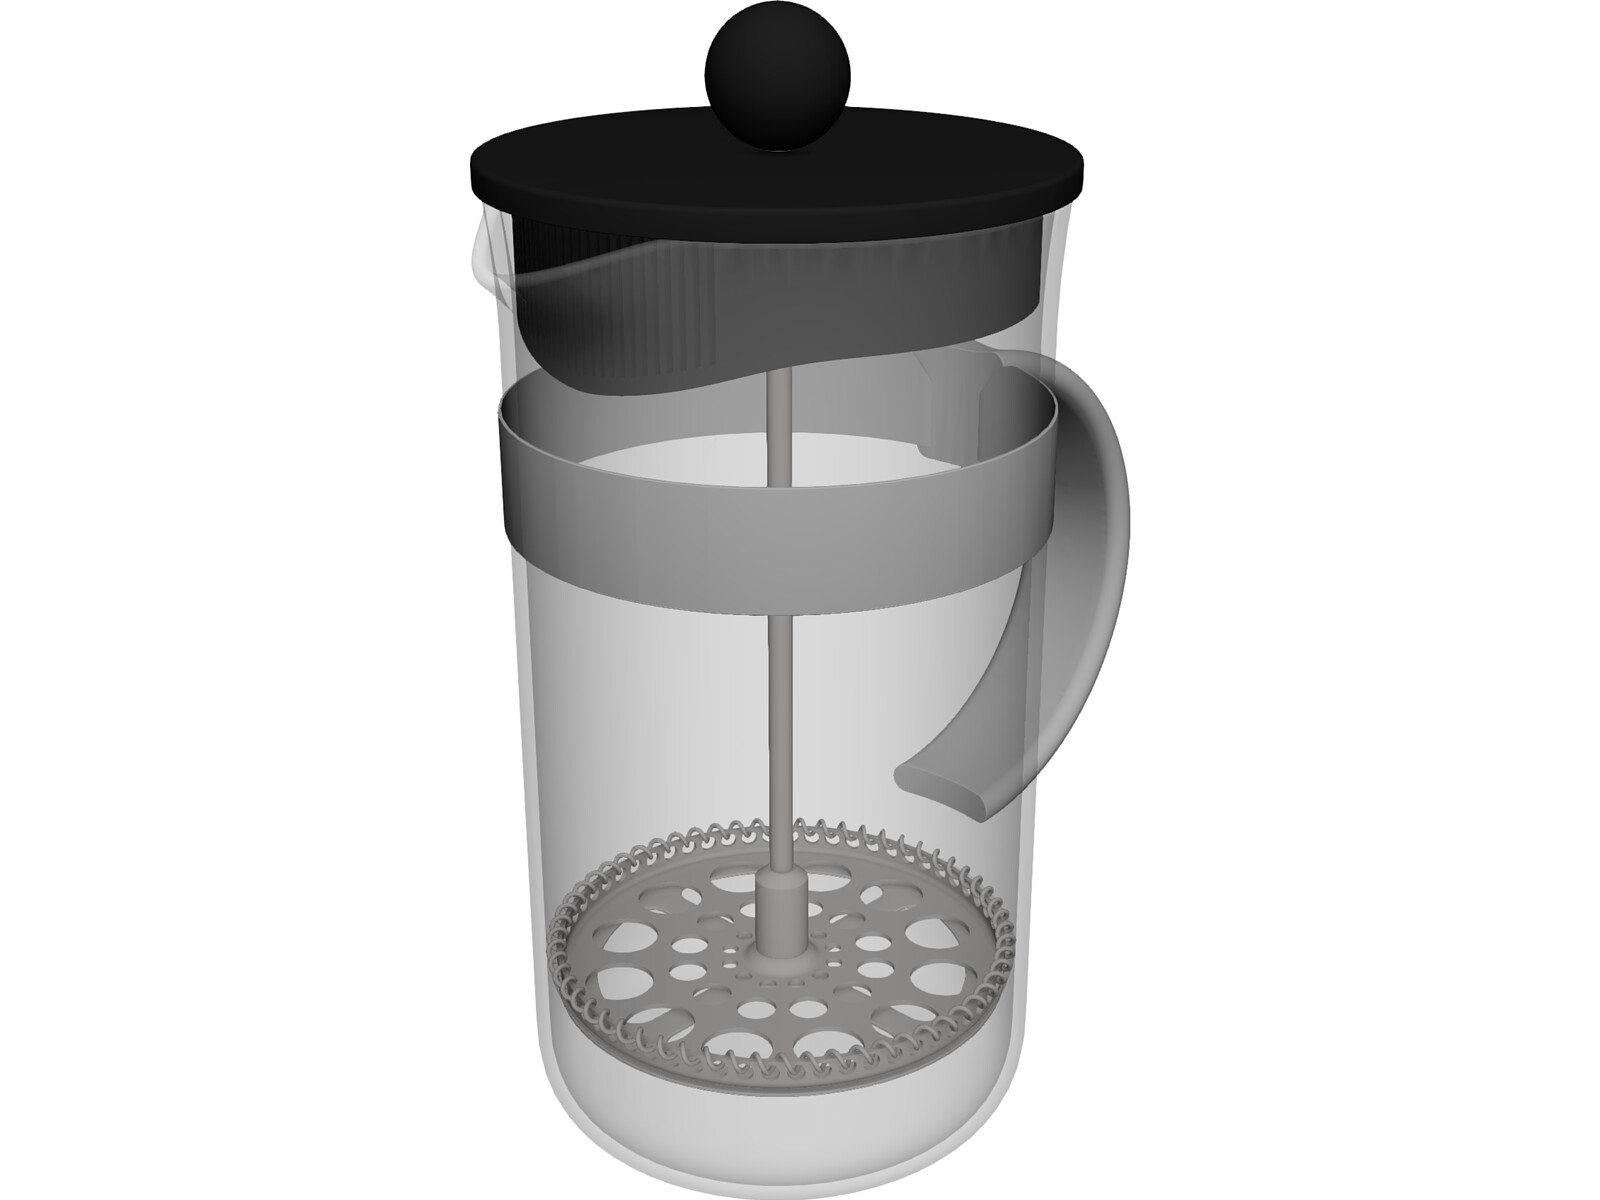 French Press 3D CAD Model